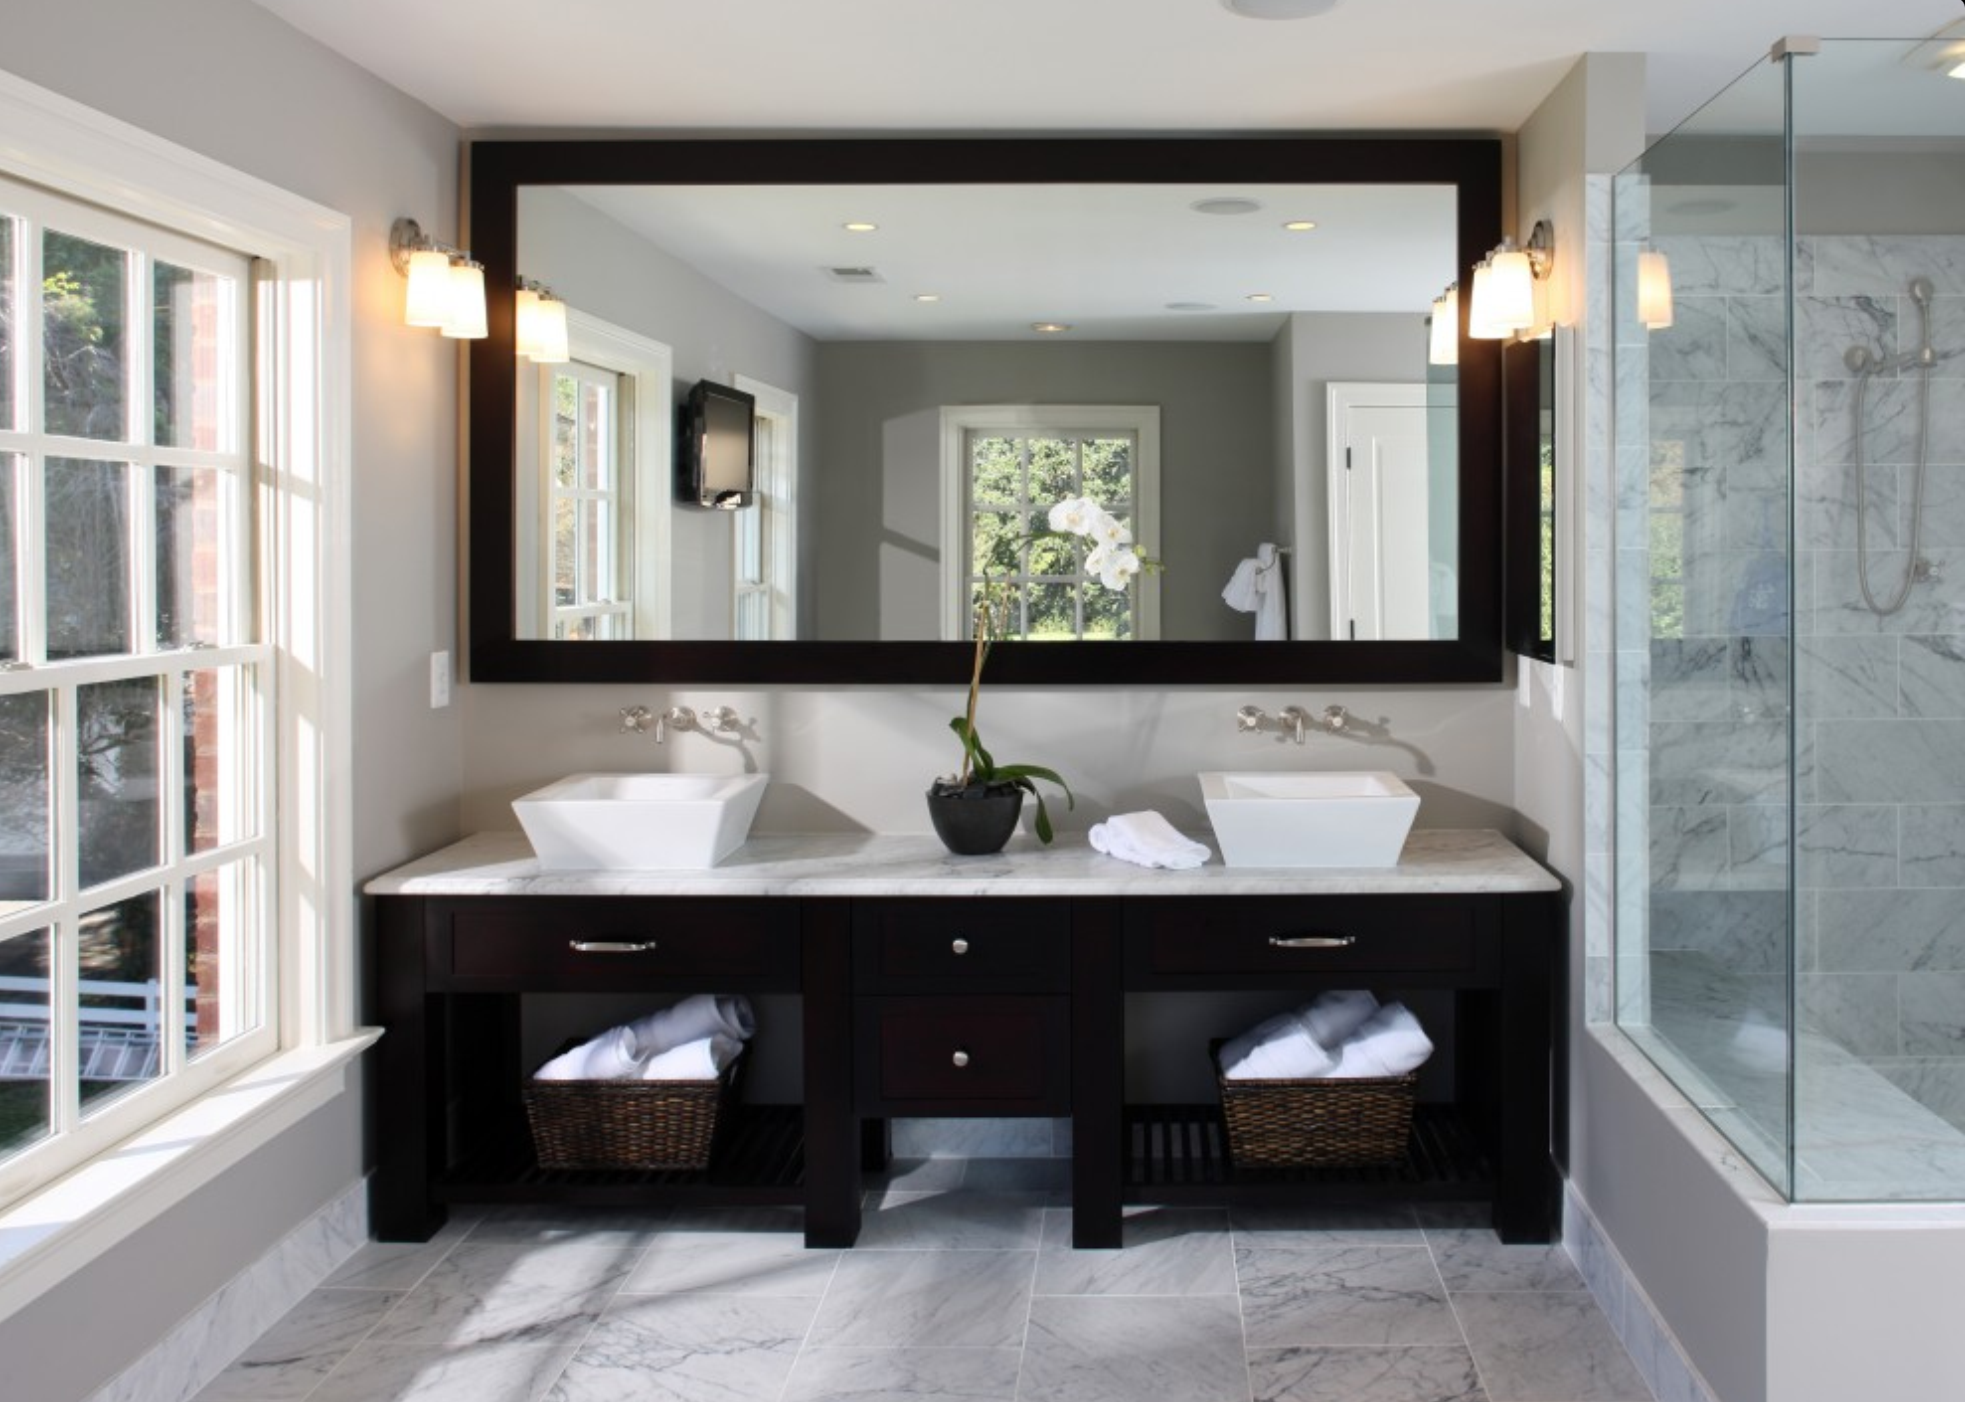 Bathroom Remodeling Design Trends 2015/2016 bathroom remodel trends | homeadvisor